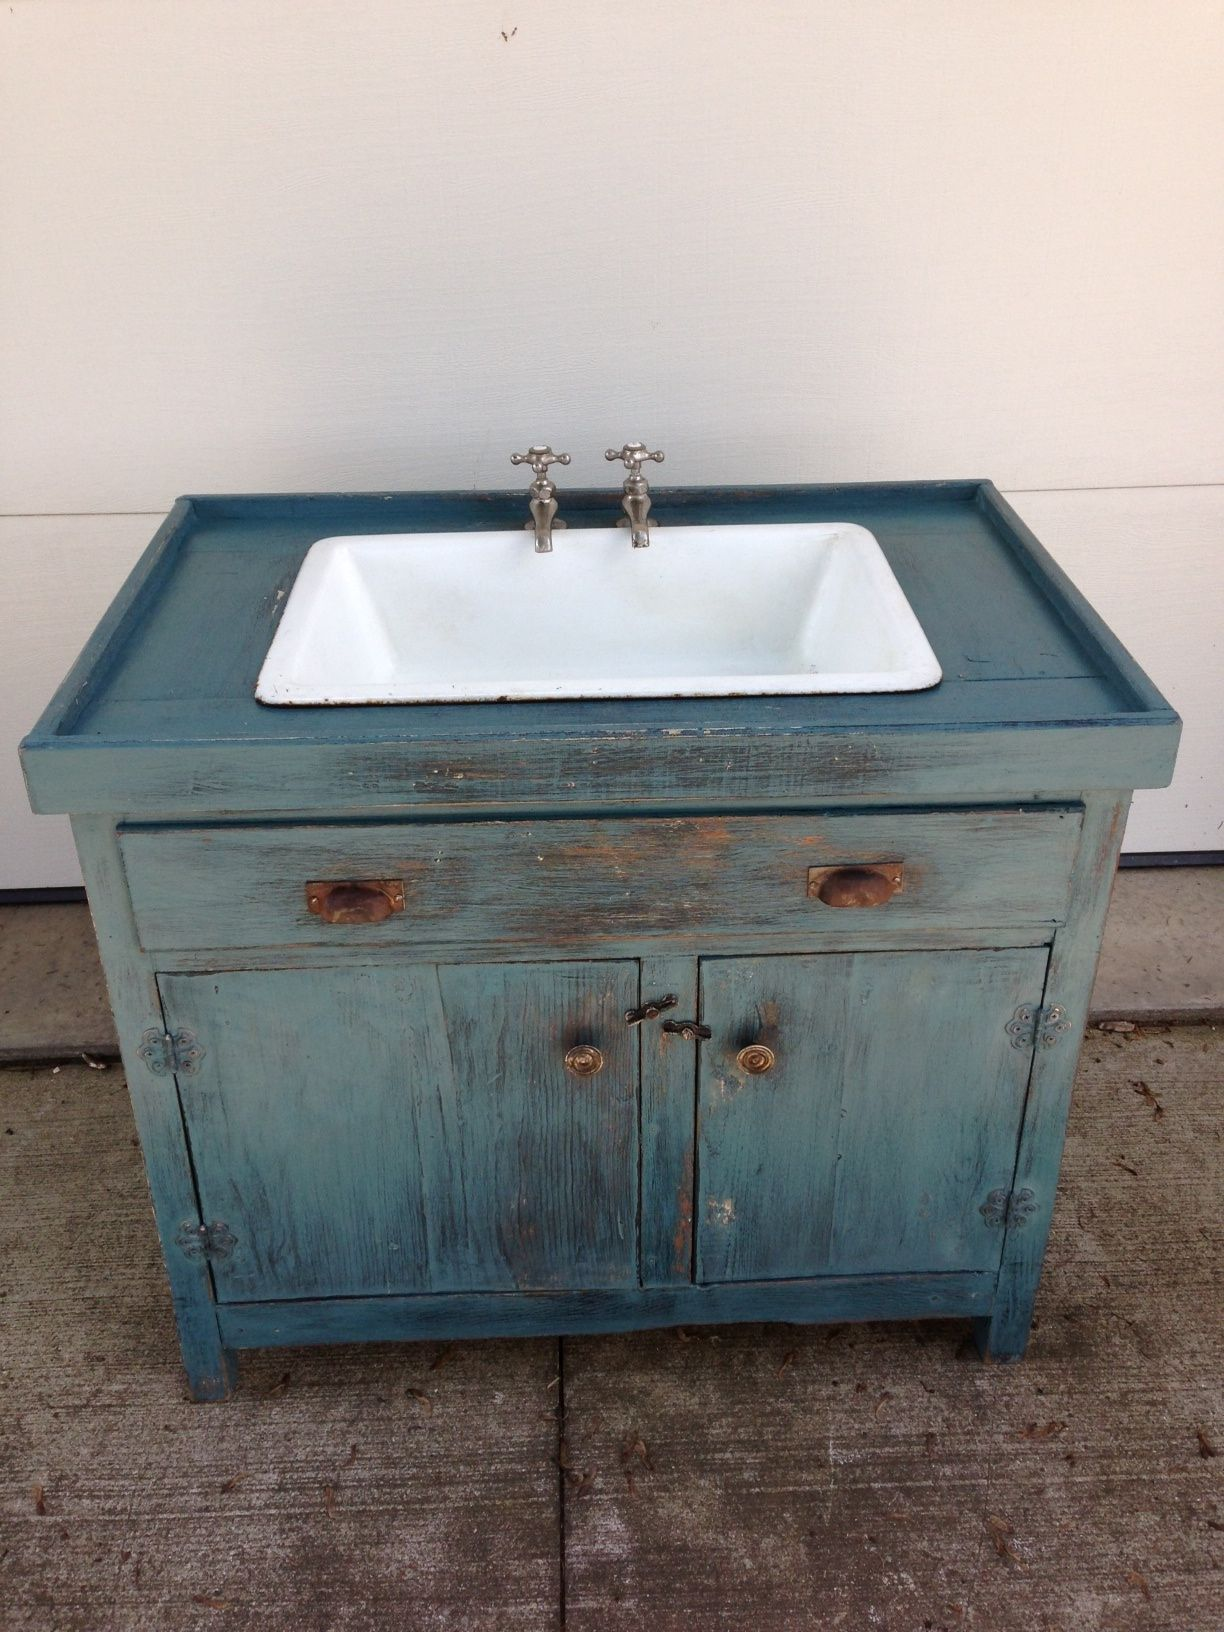 Base Cabinet Converted To A Dry Sink With A Porcelain Sink And Faucets Added Primitive Bathrooms Bathroom Dry Sink